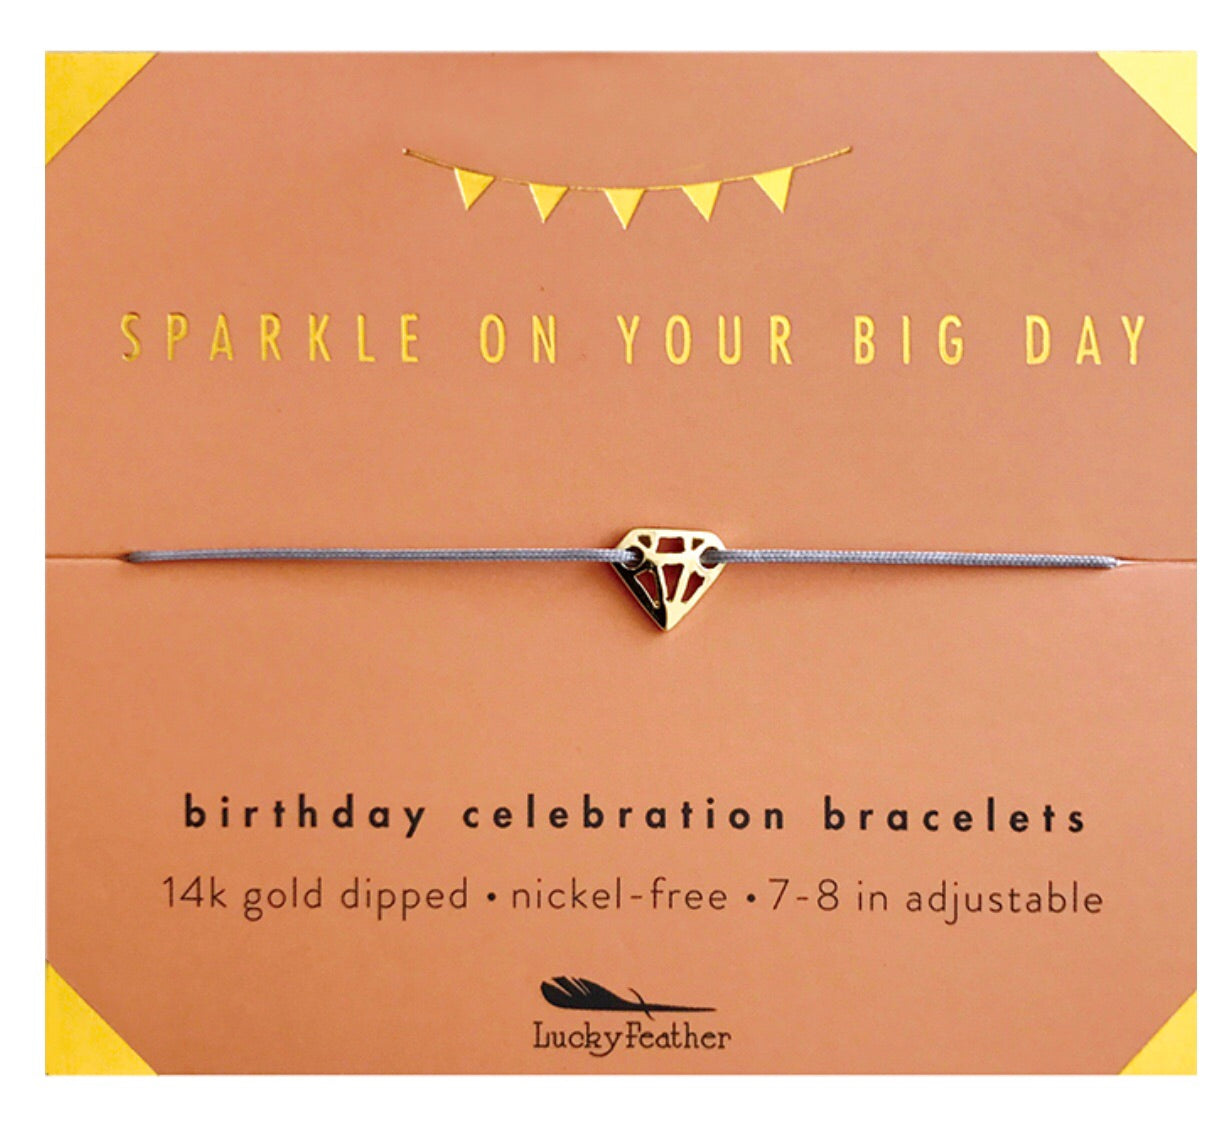 sparkle on your big day birthday bracelet